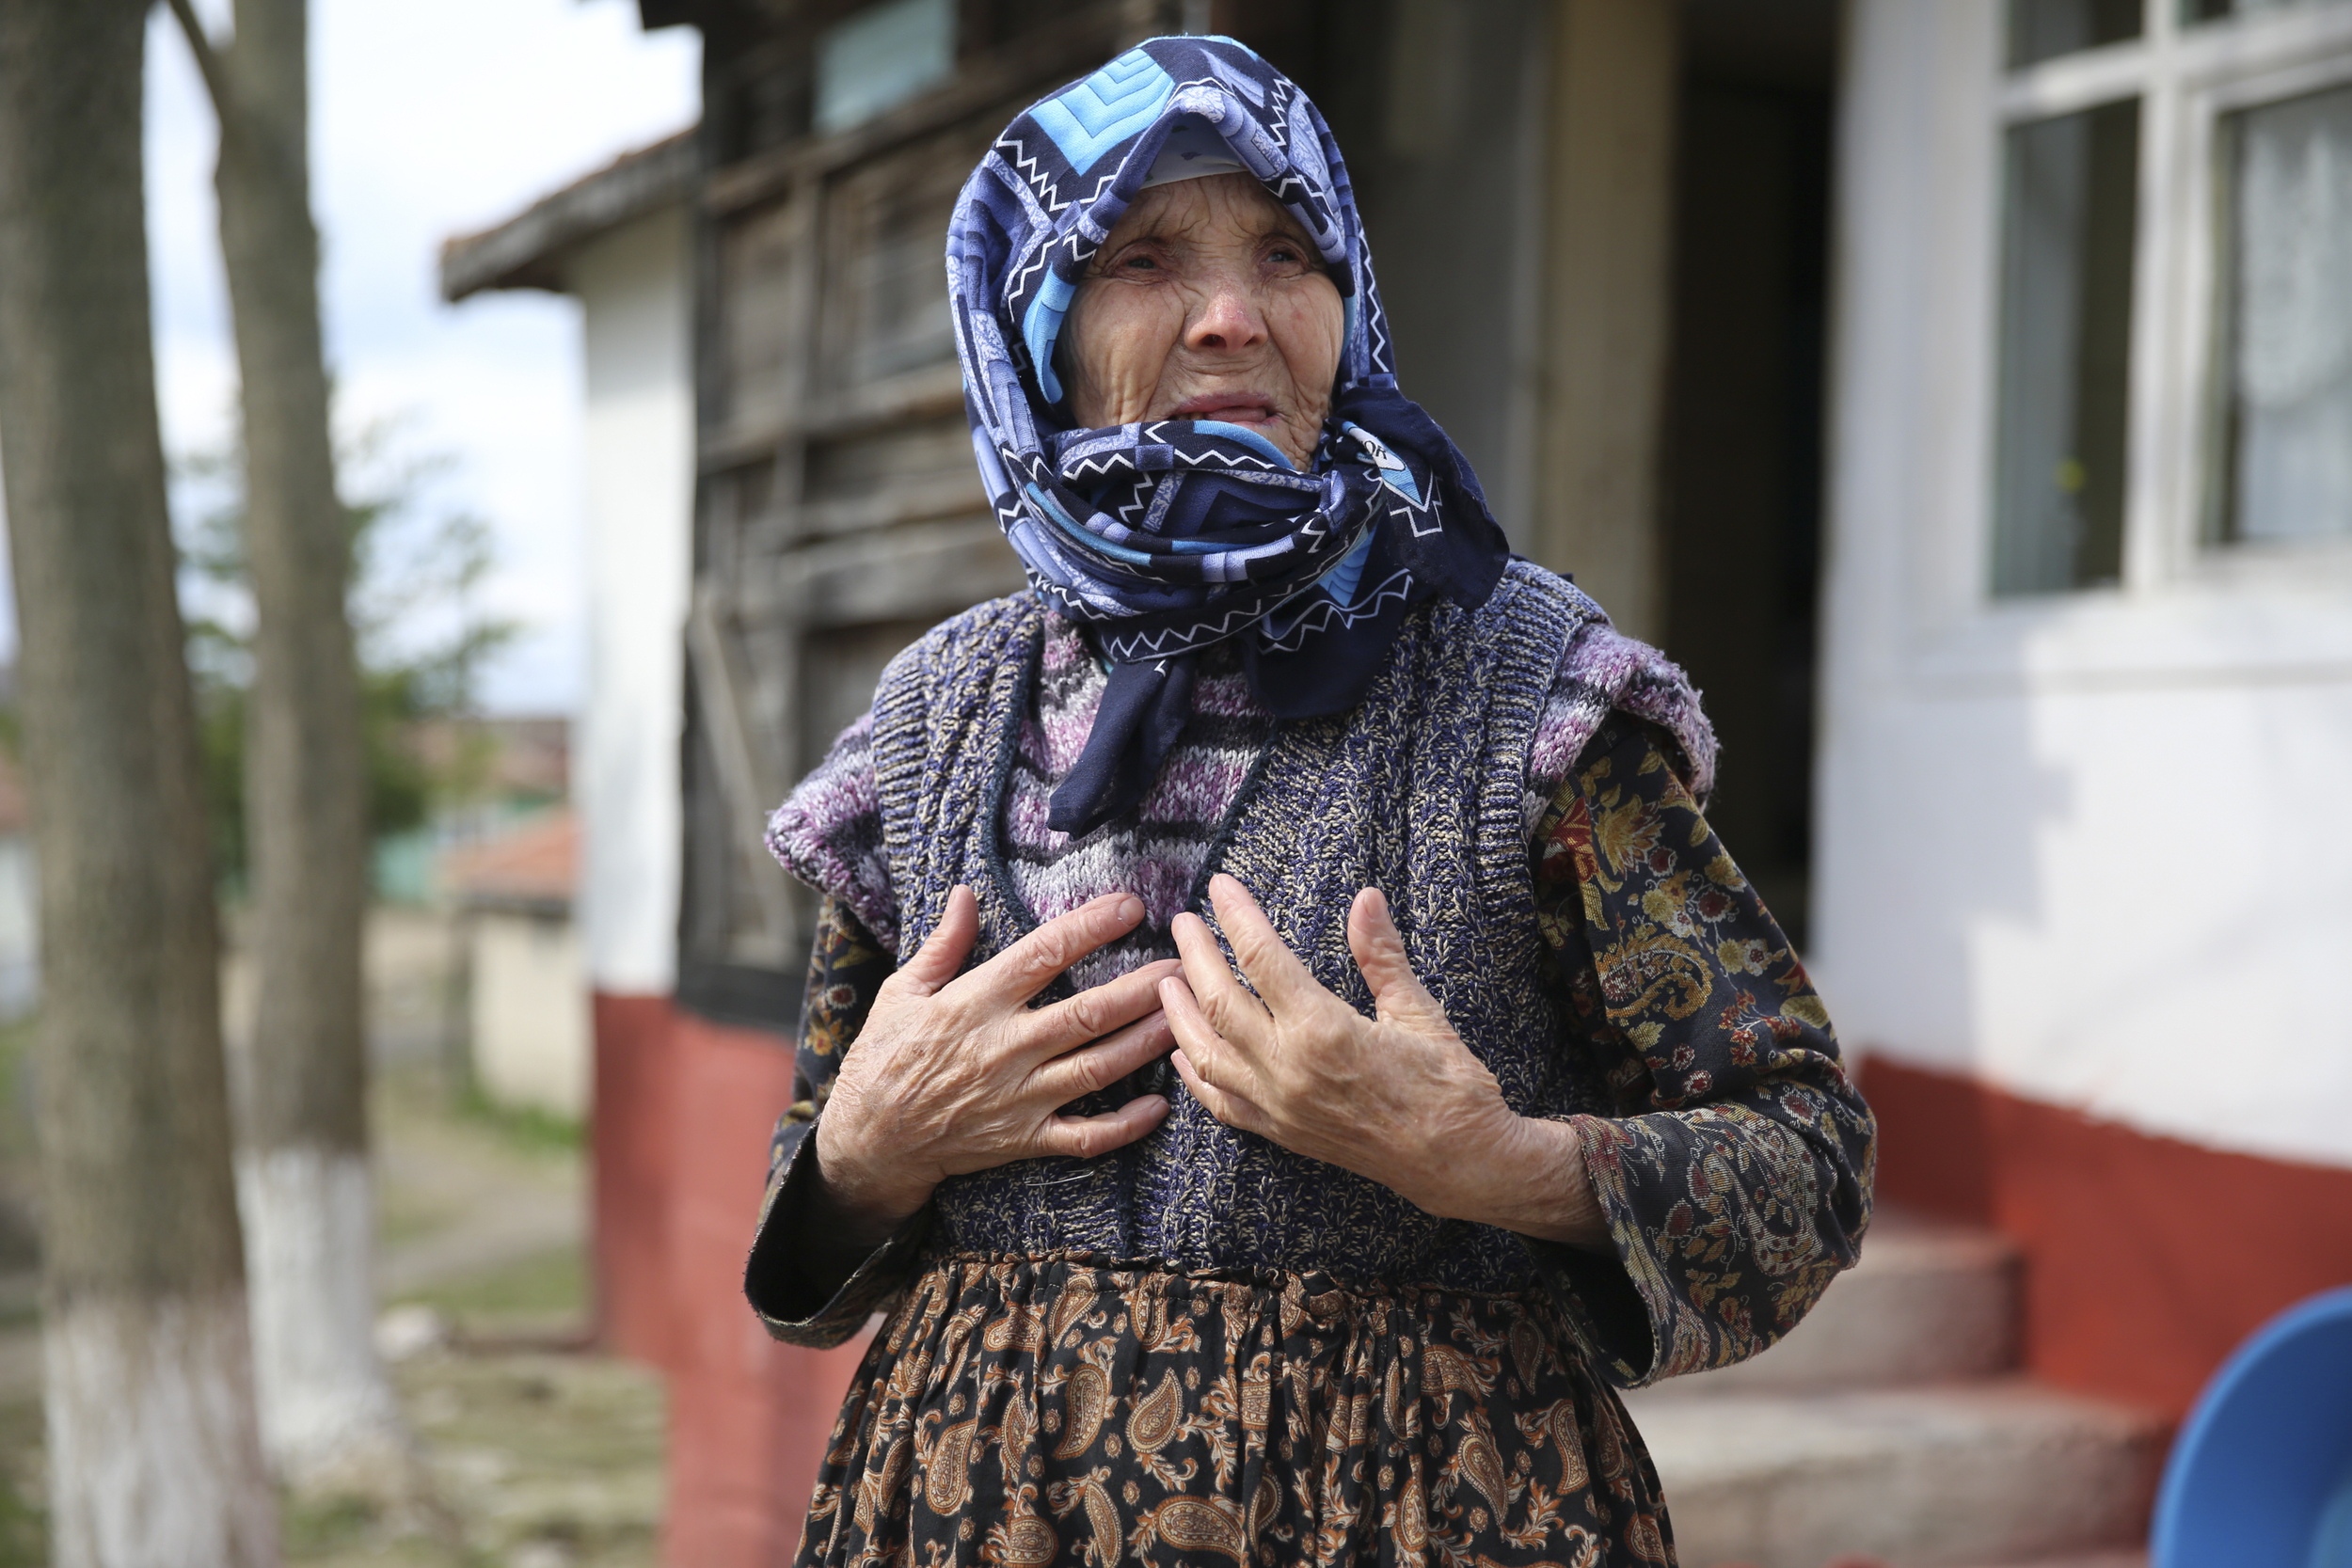 Ferede Sarar Gecer, 82, said that every day dozens of migrants pass through her village, which lies on the border with Bulgaria. She says she gives them food and tea.